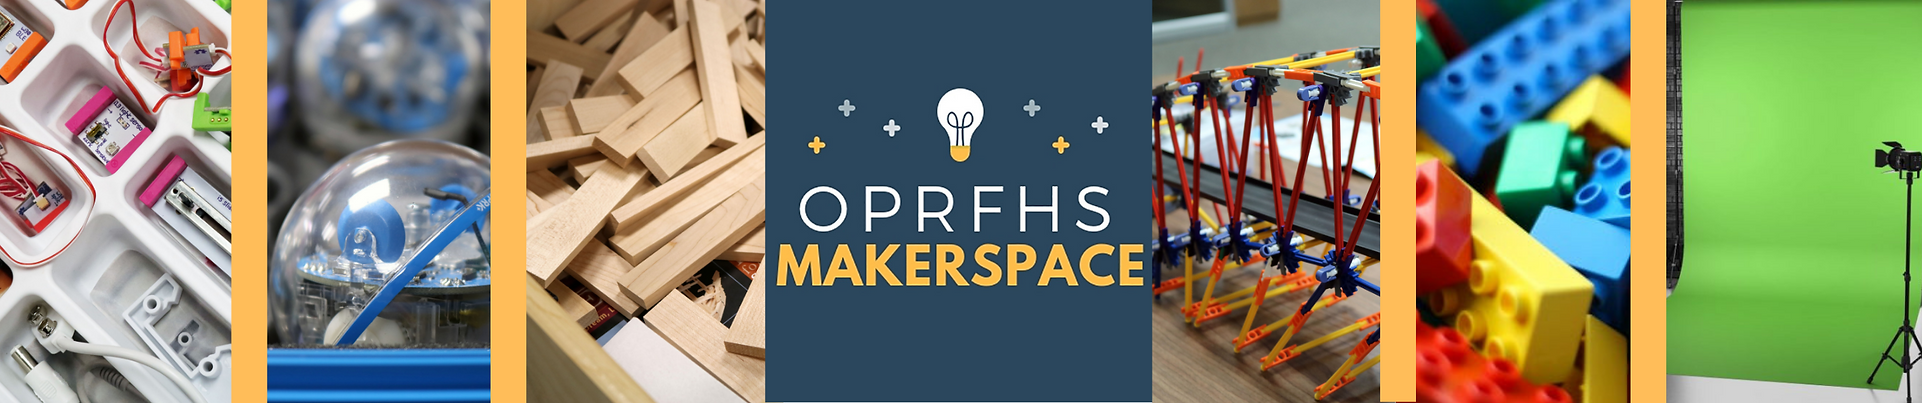 Makerspace Banner_edited.png